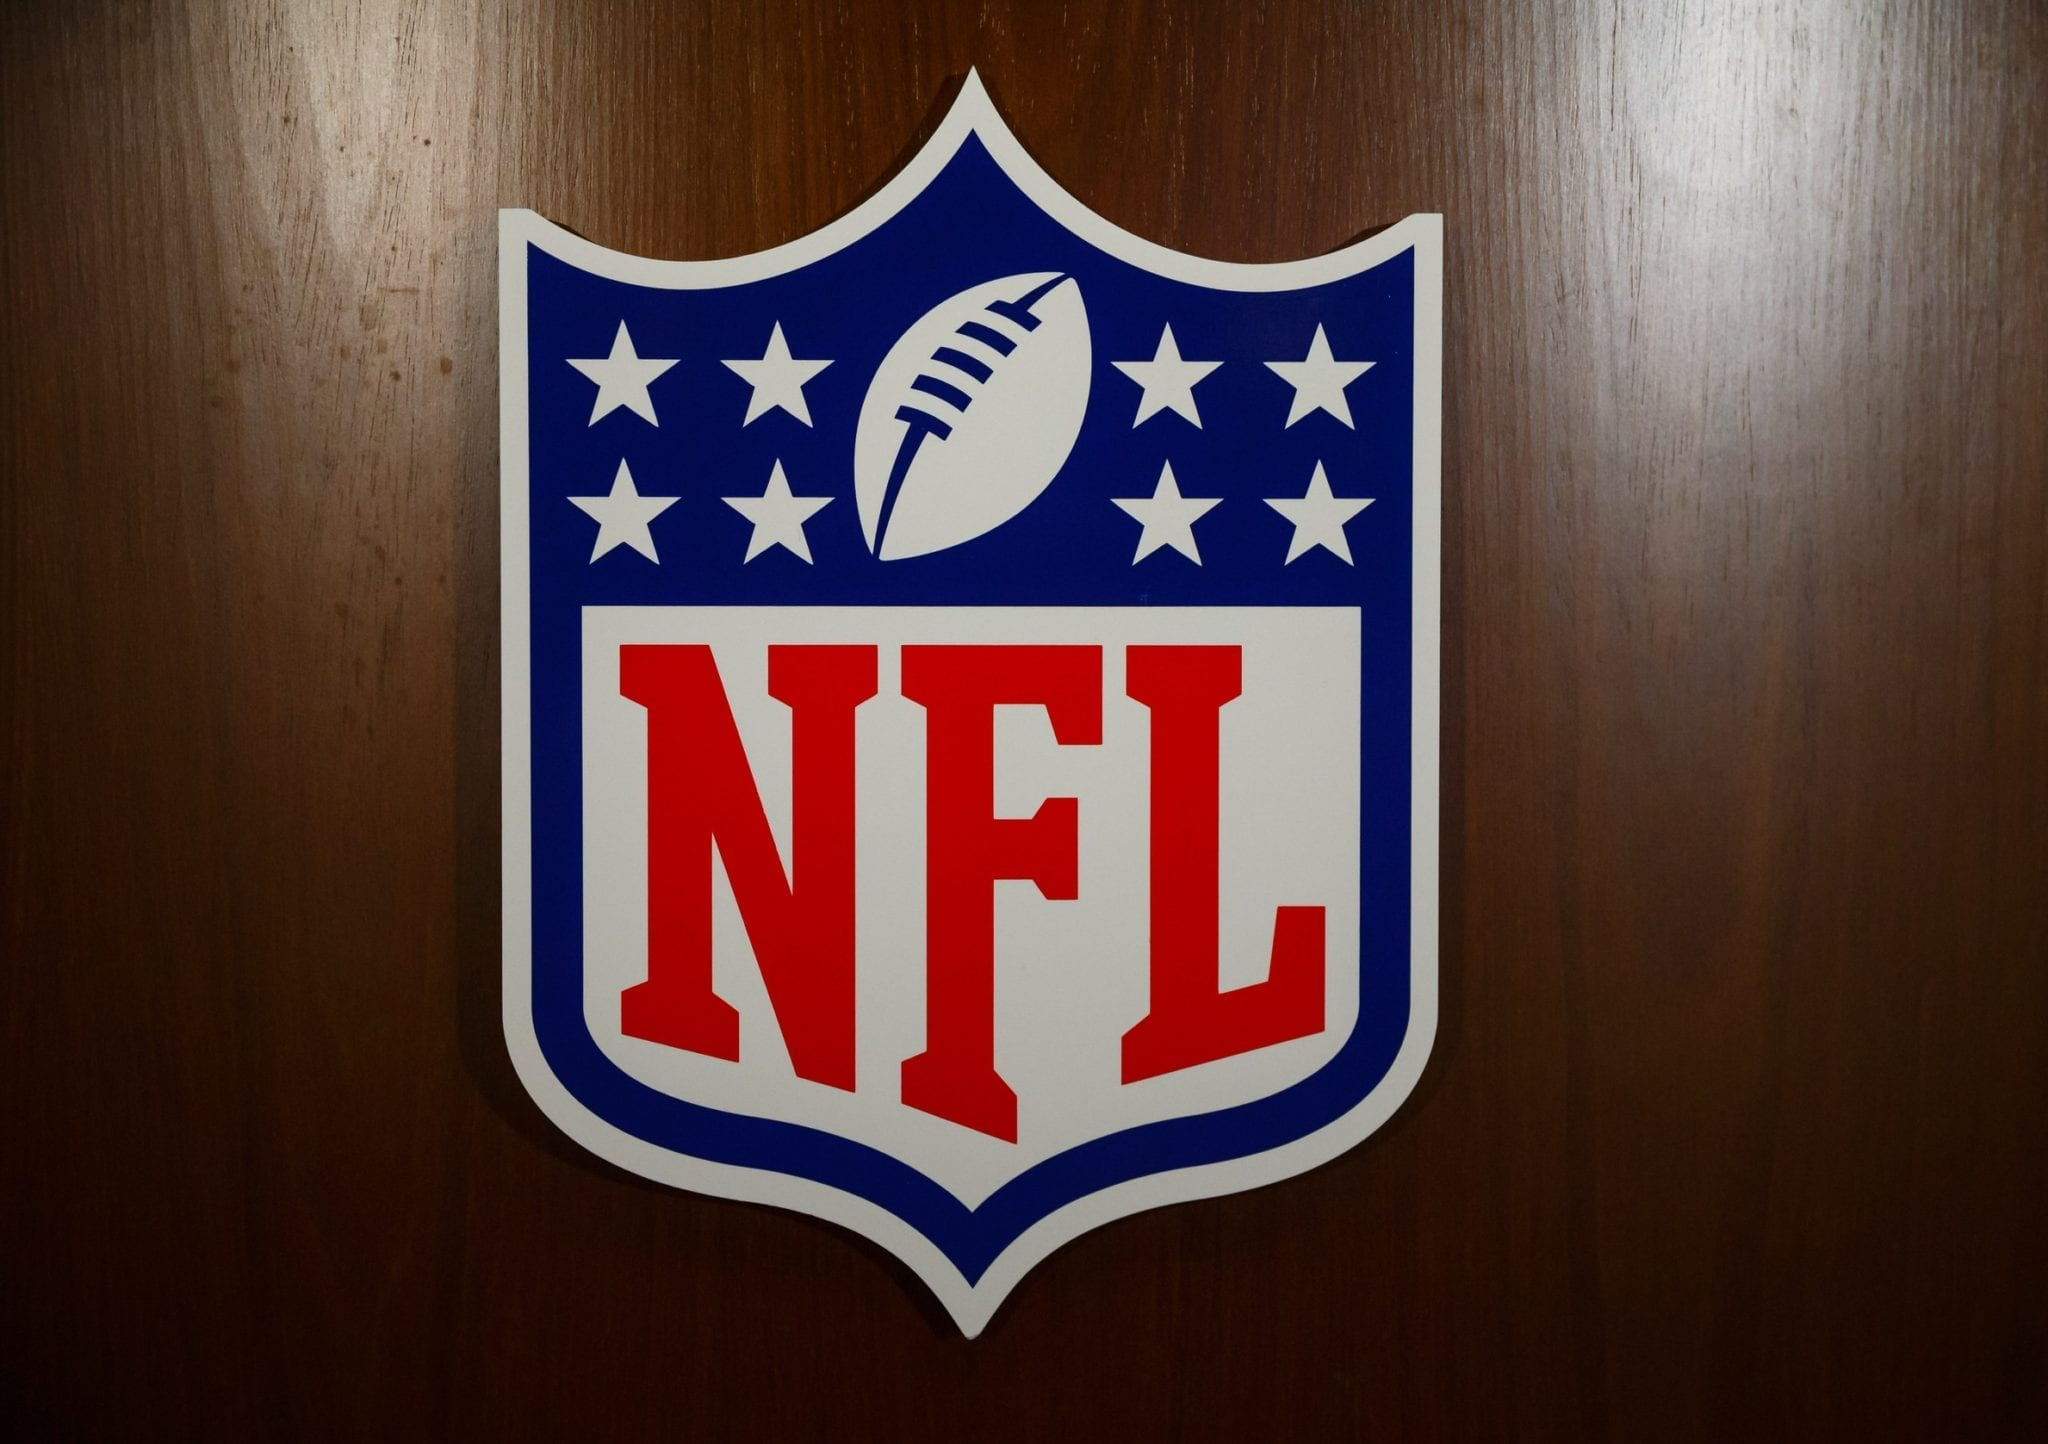 Best Free Agents Nfl 2019 Top 50 Available 2019 NFL Free Agents List | NFLTradeRumors.co